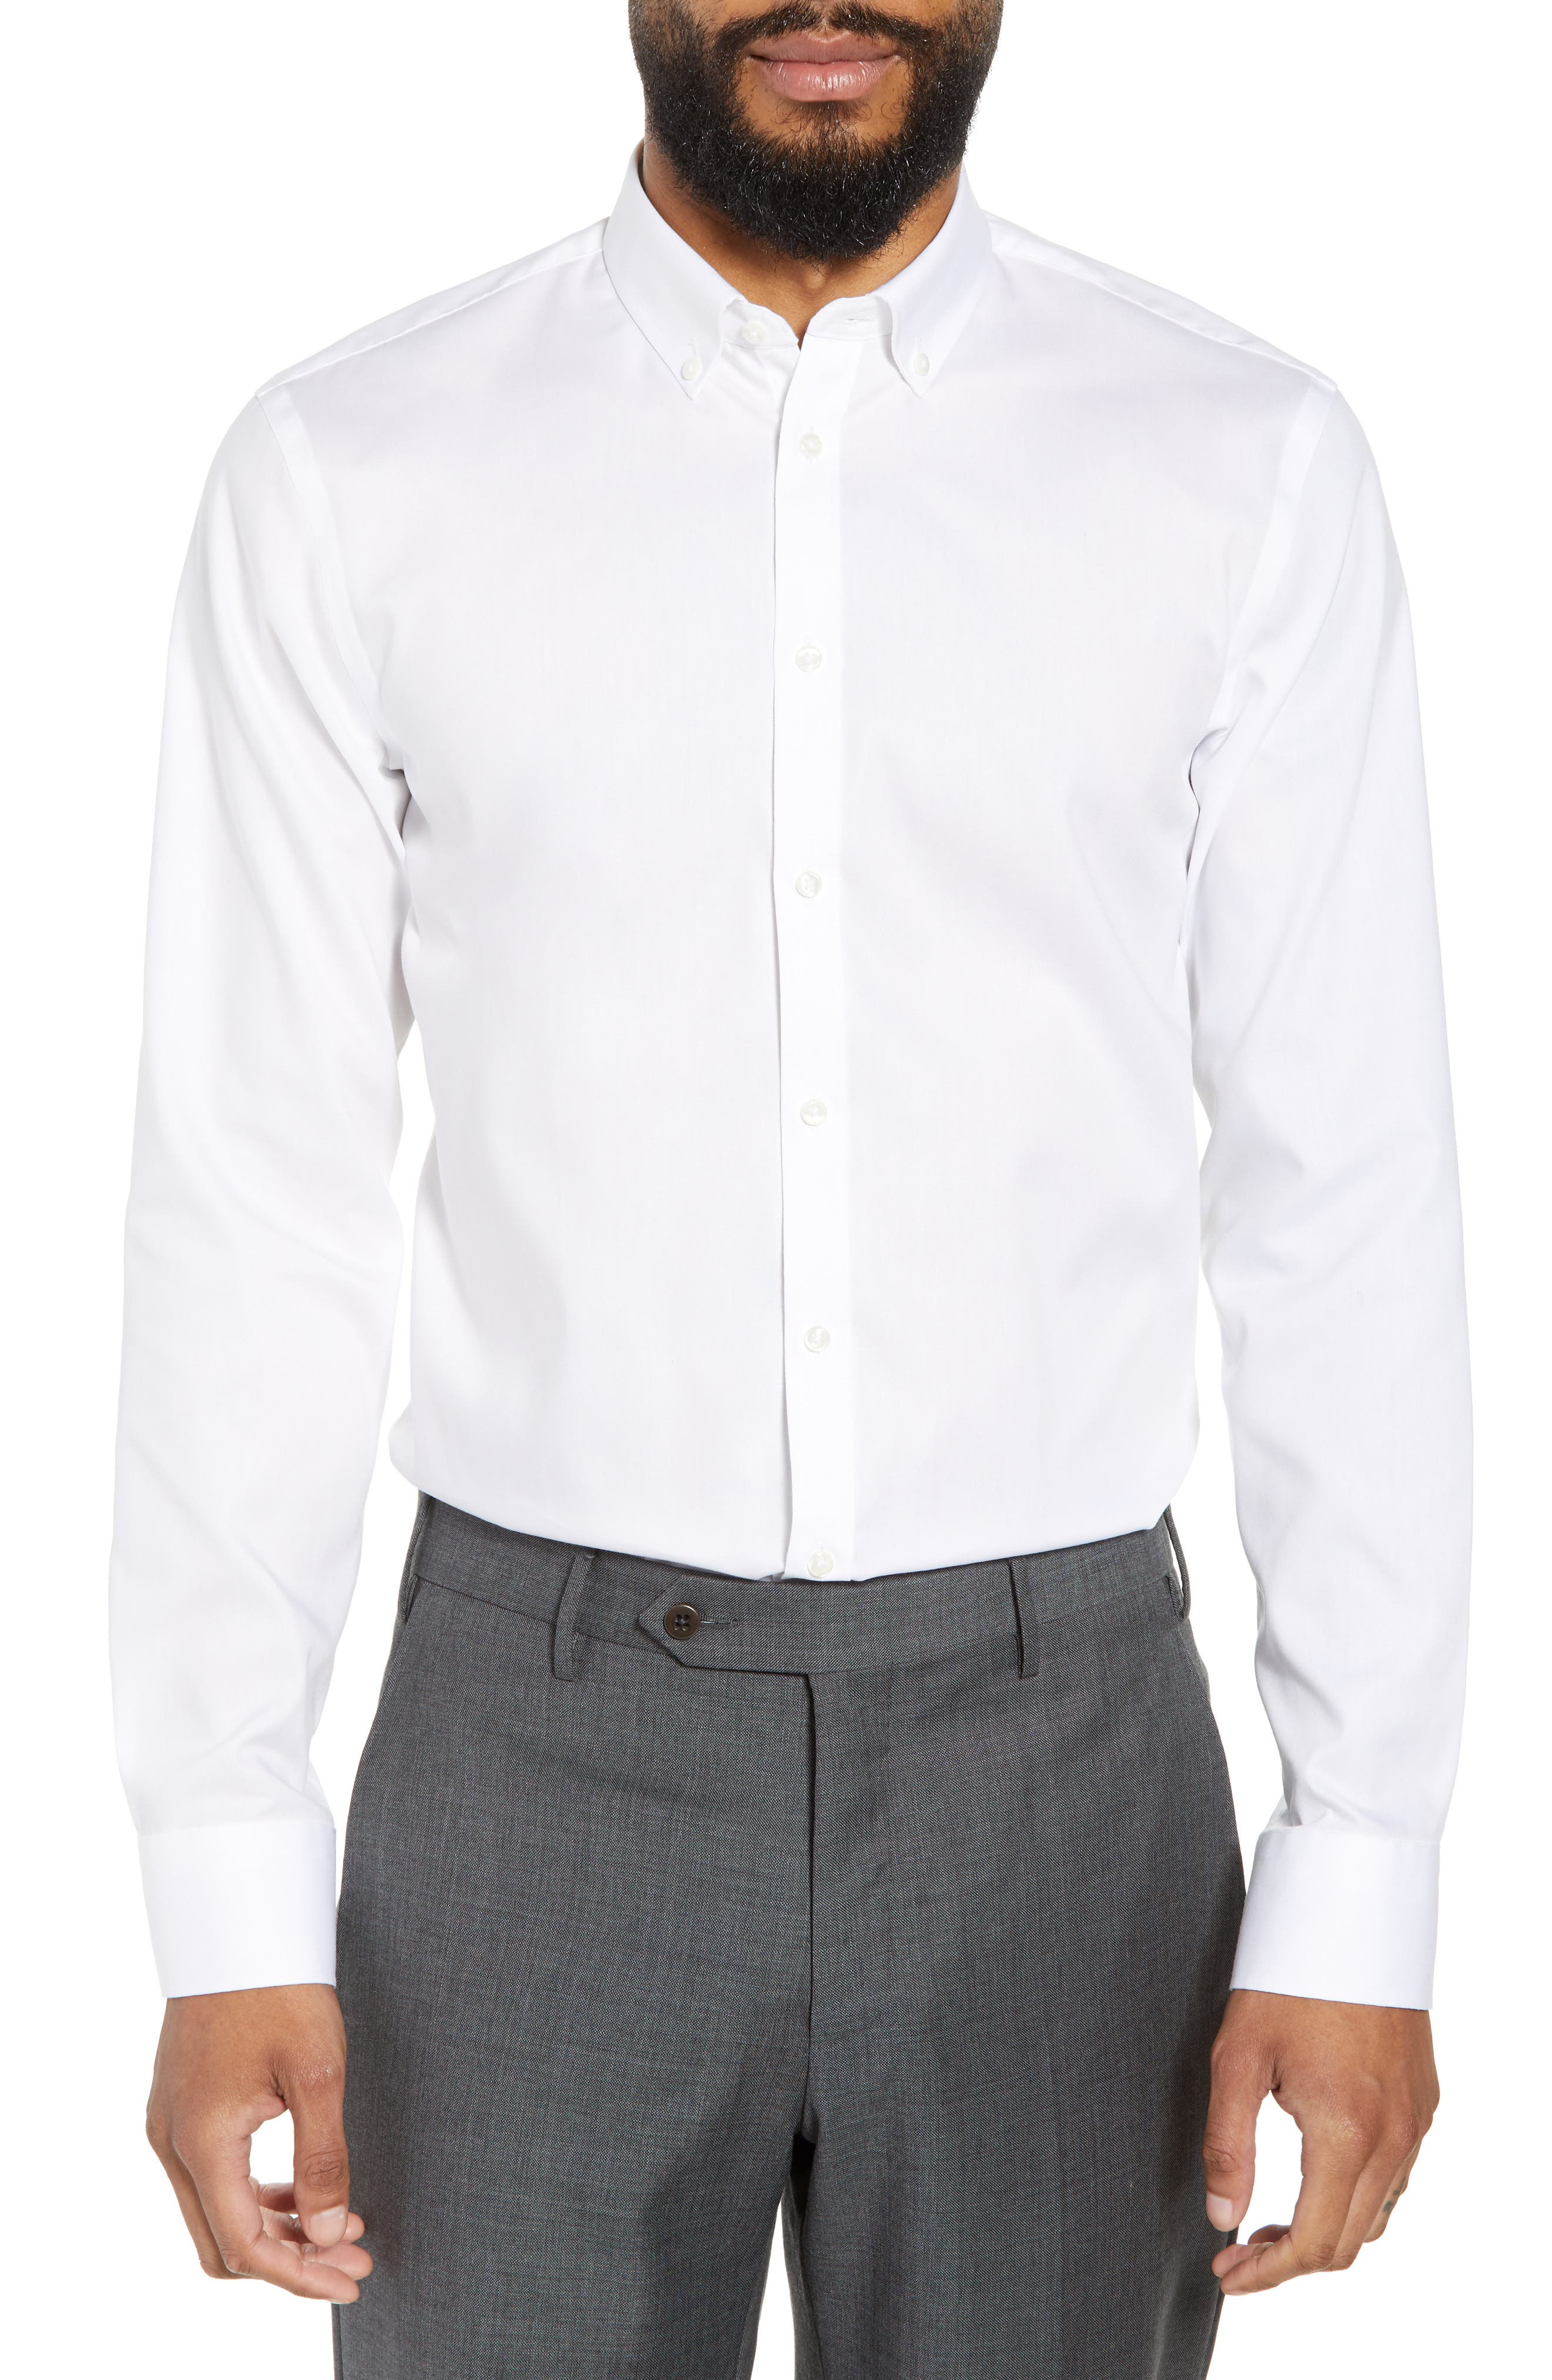 Extra Trim Fit Non-Iron Solid Dress Shirt,                             Main thumbnail 1, color,                             White